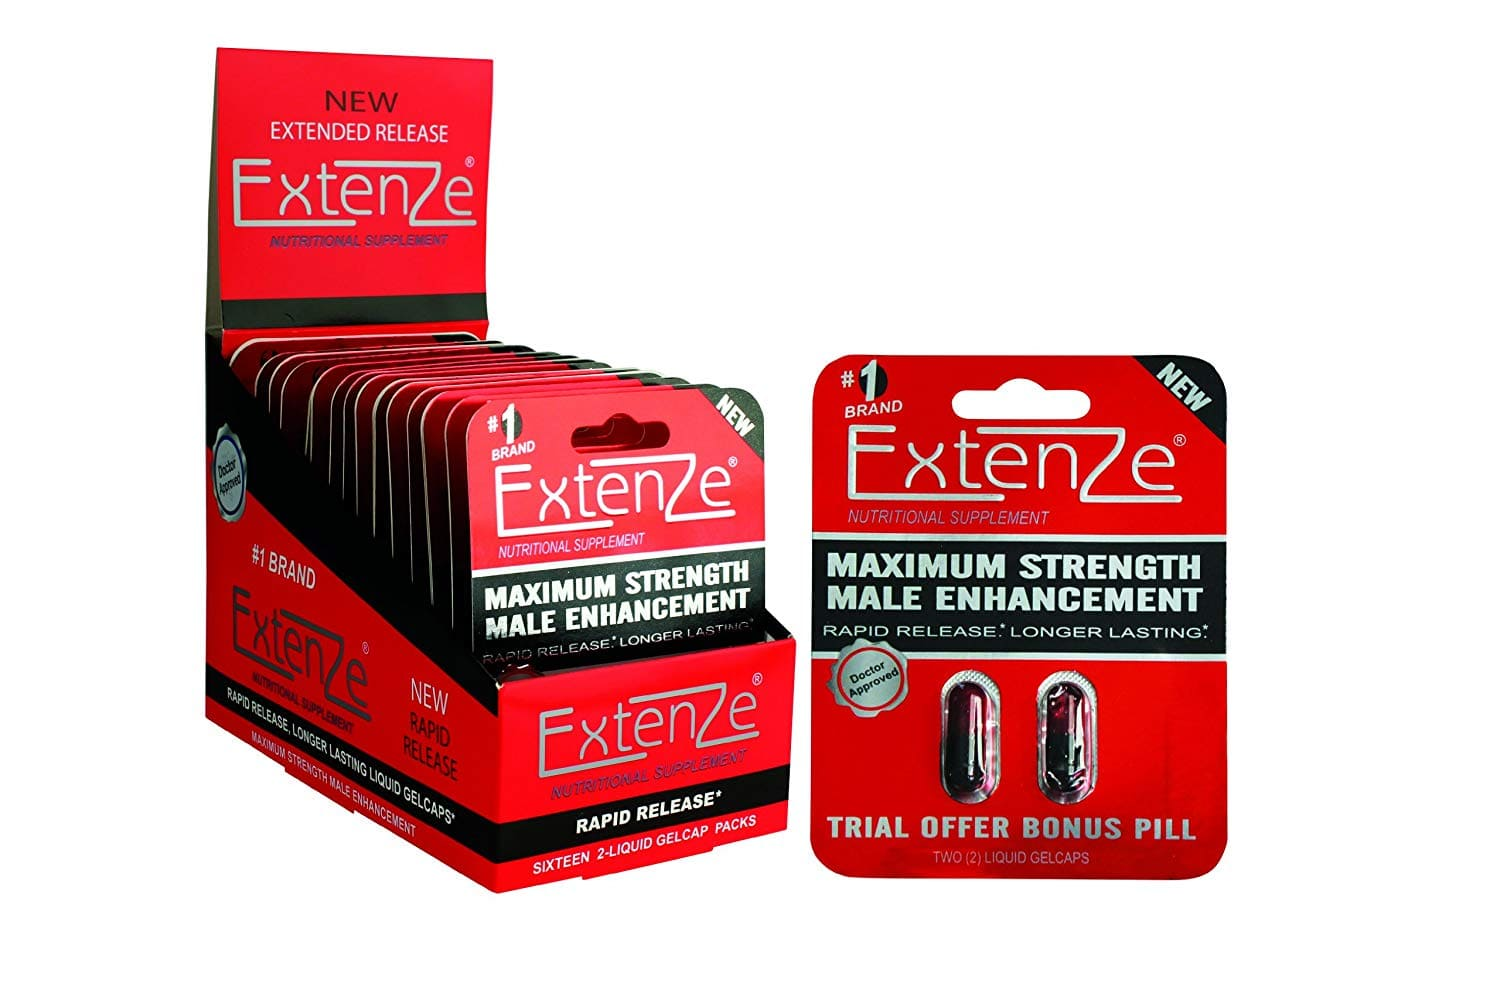 Extenze box pack